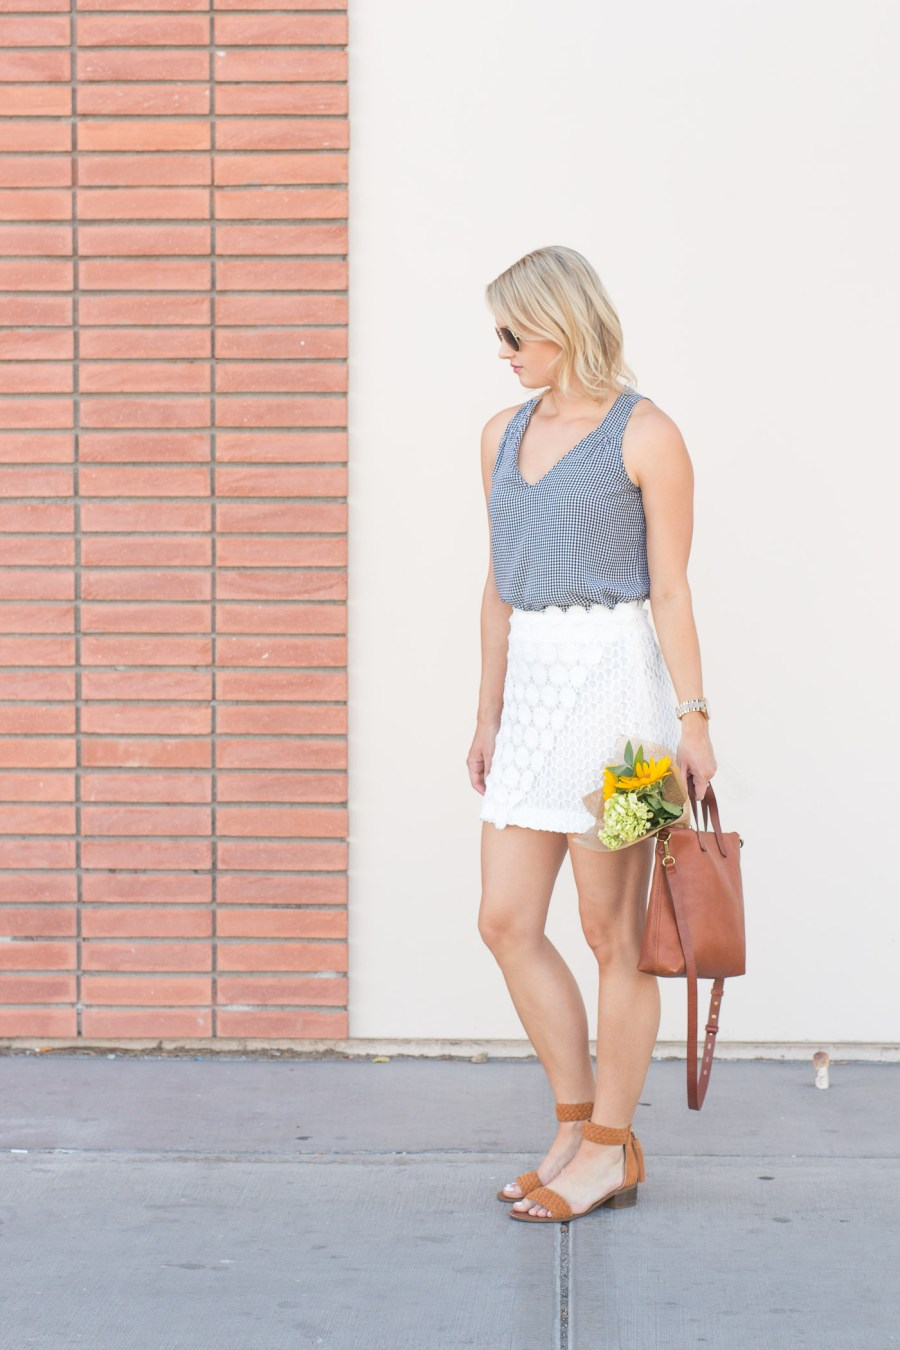 What To Wear With A White Lace Skirt, Topshop skirt, fashion blog, spring outfit idea, Treats and Trends